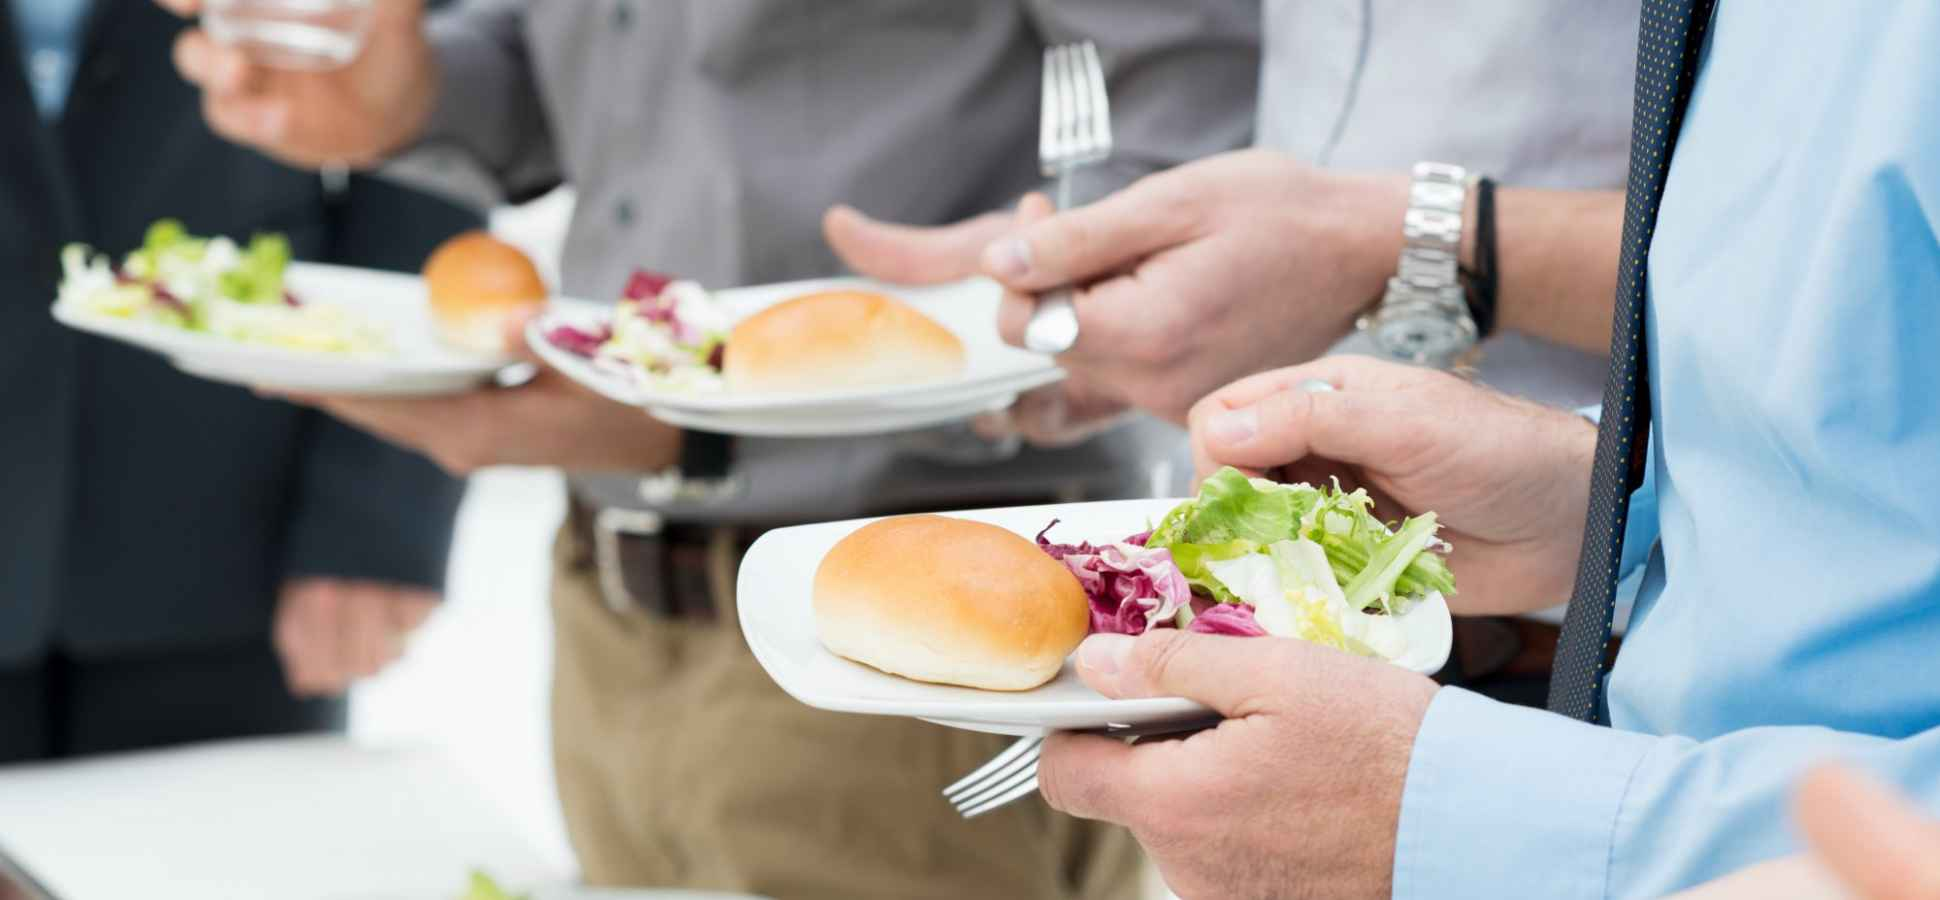 You Can't Potluck Your Way to a Great Company Culture